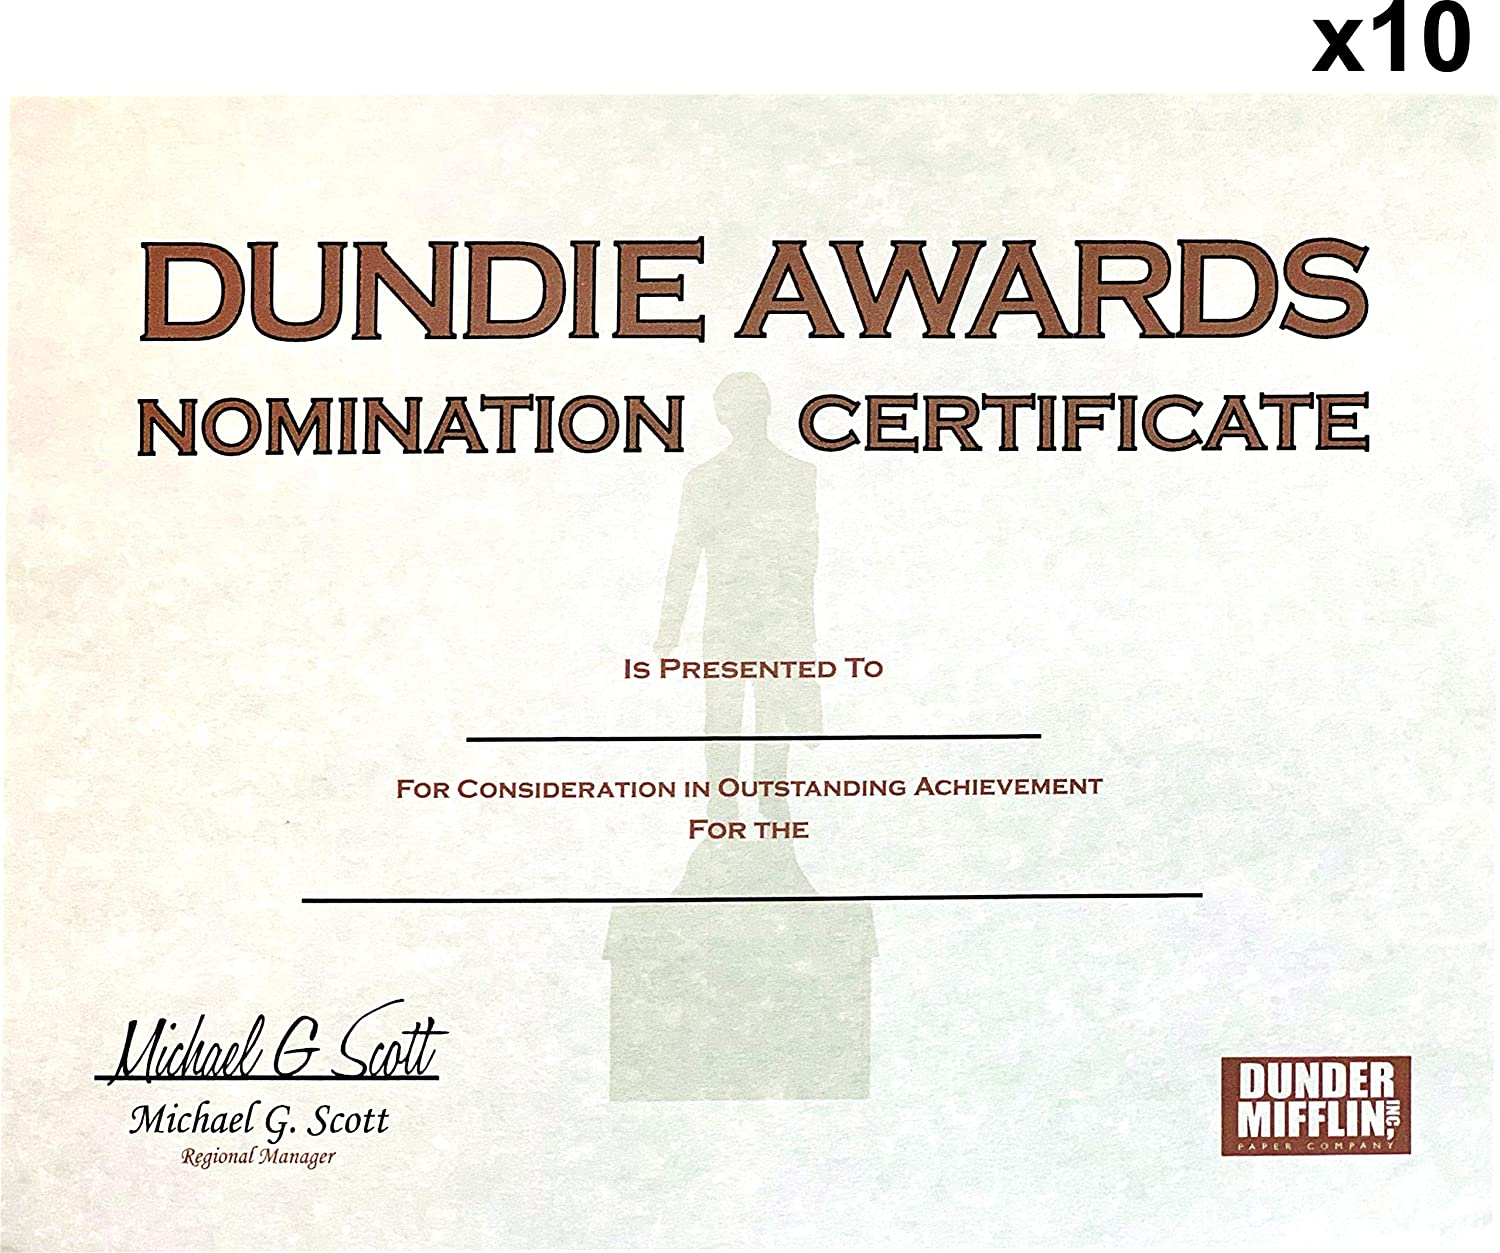 Dundie Award Nomination Certificates (10), Customizable